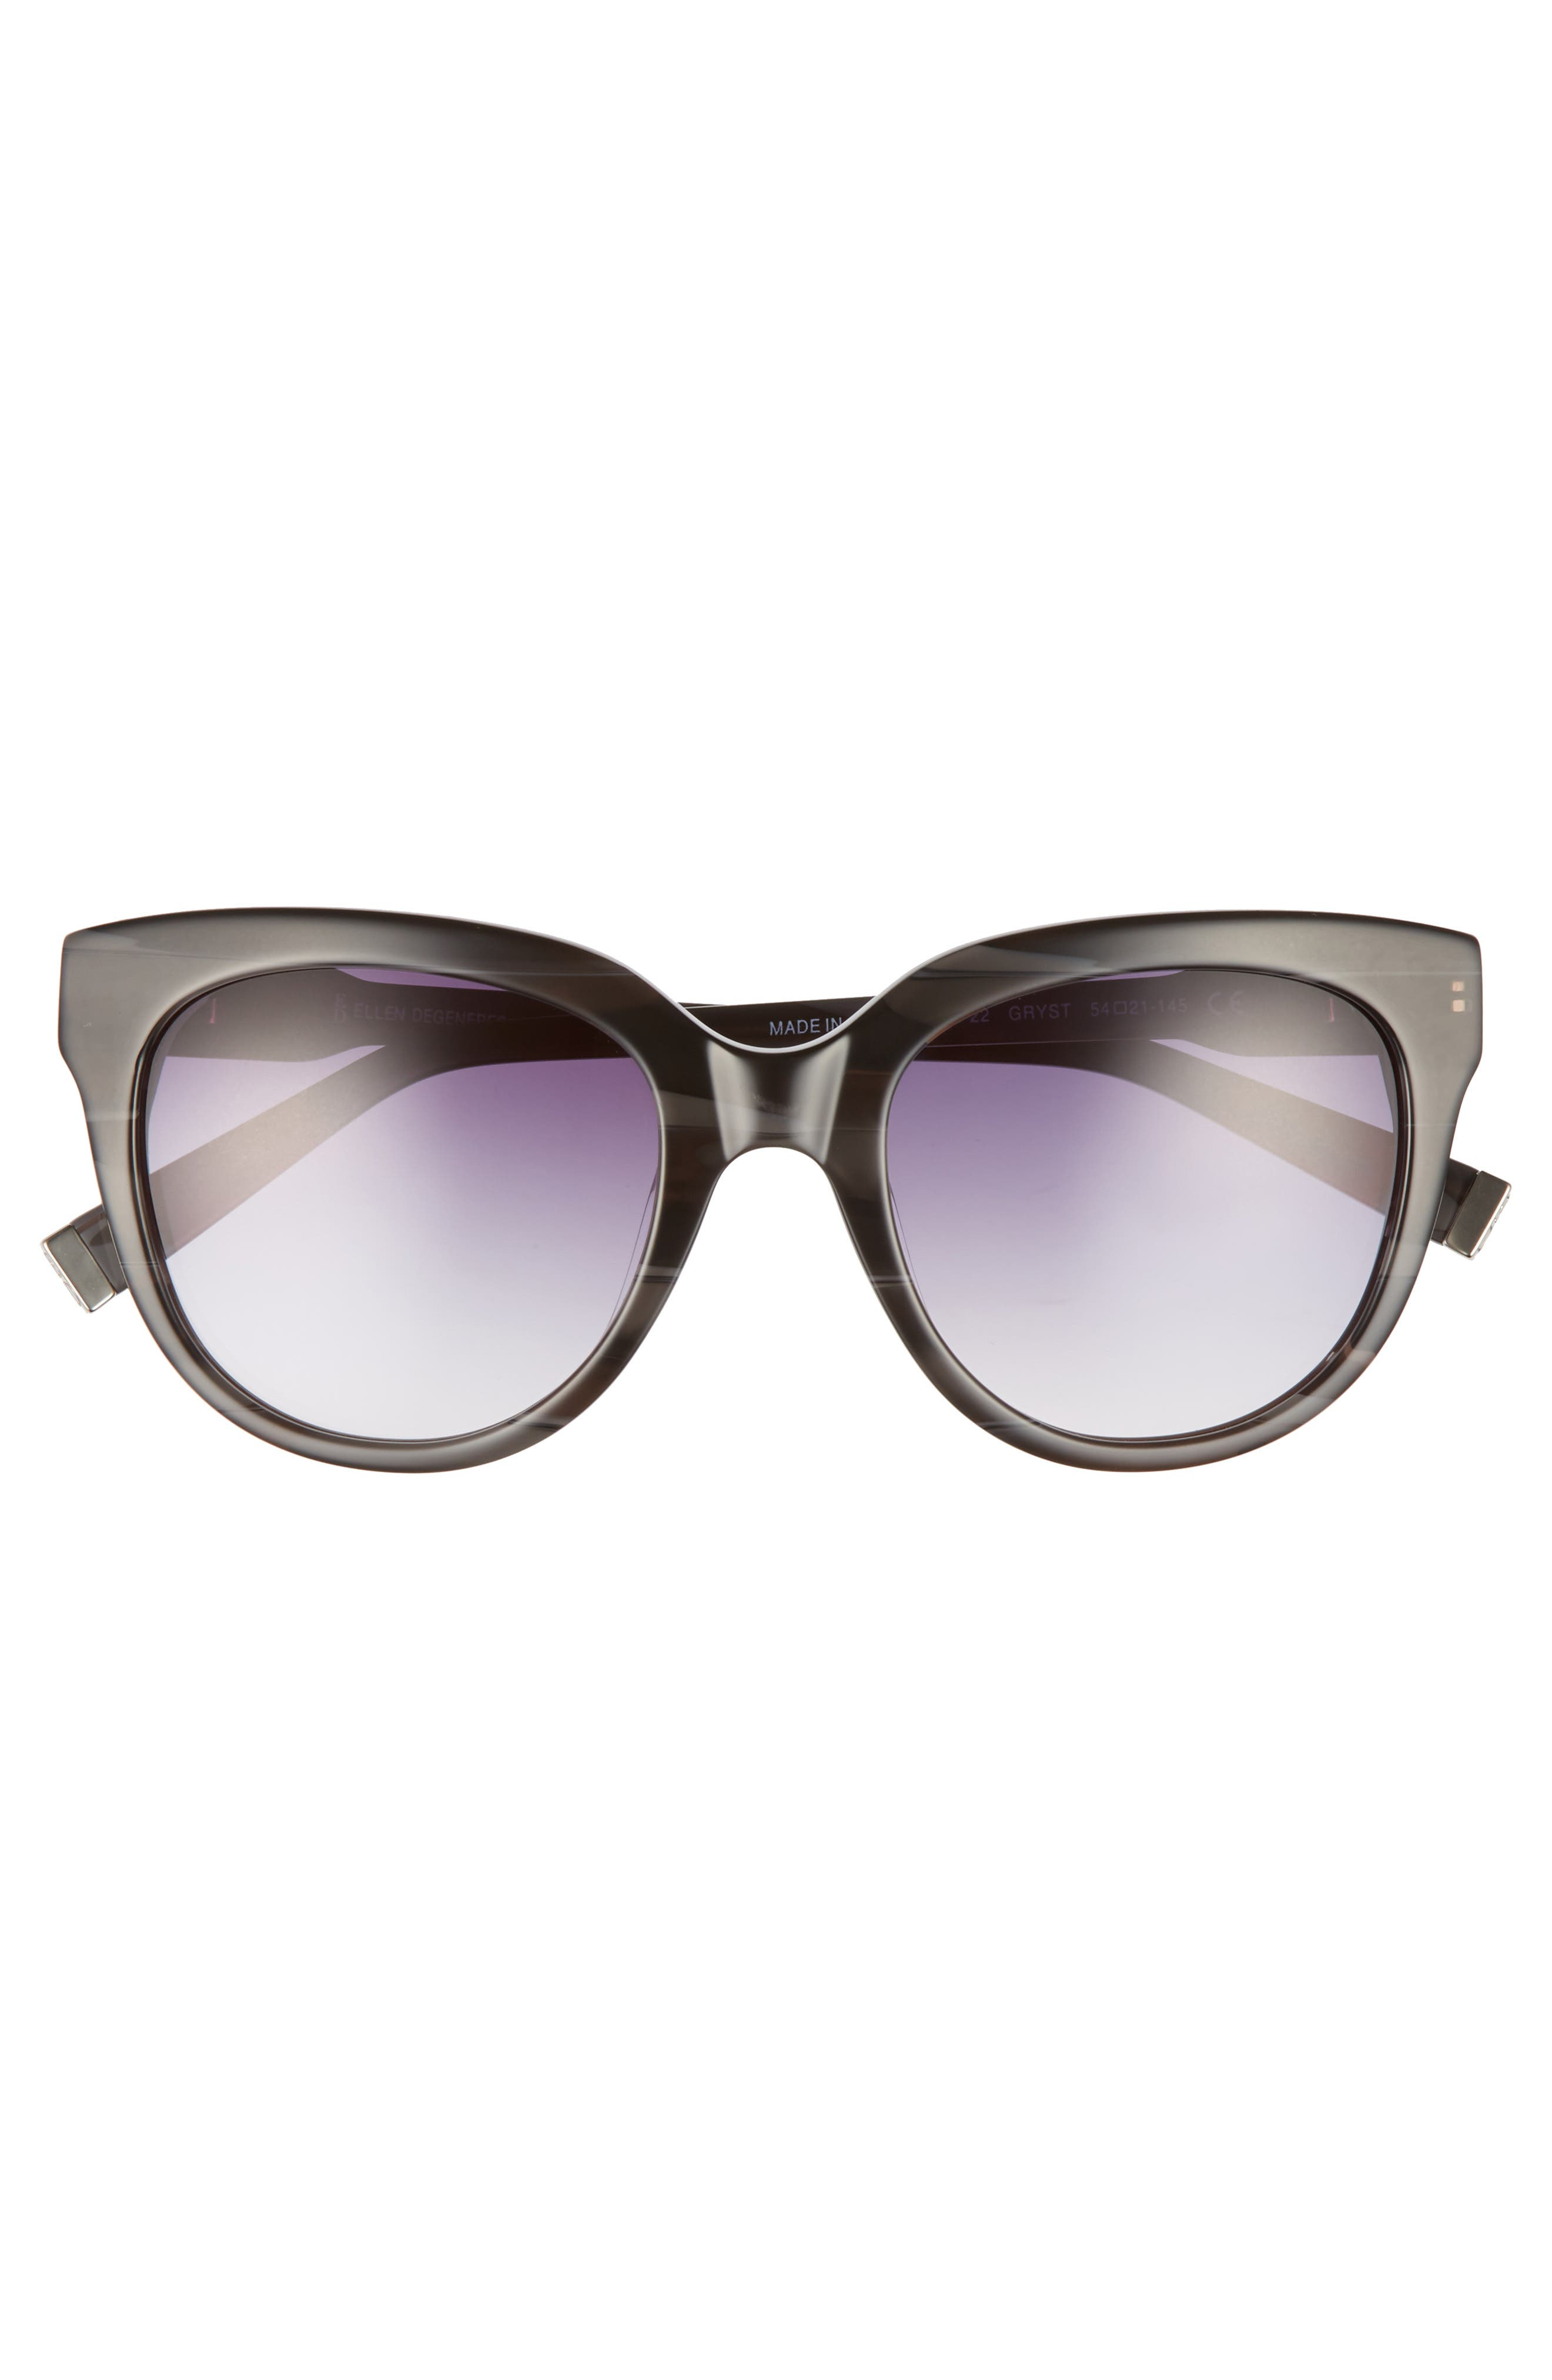 54mm Oval Sunglasses,                             Alternate thumbnail 3, color,                             GREY STRIPE